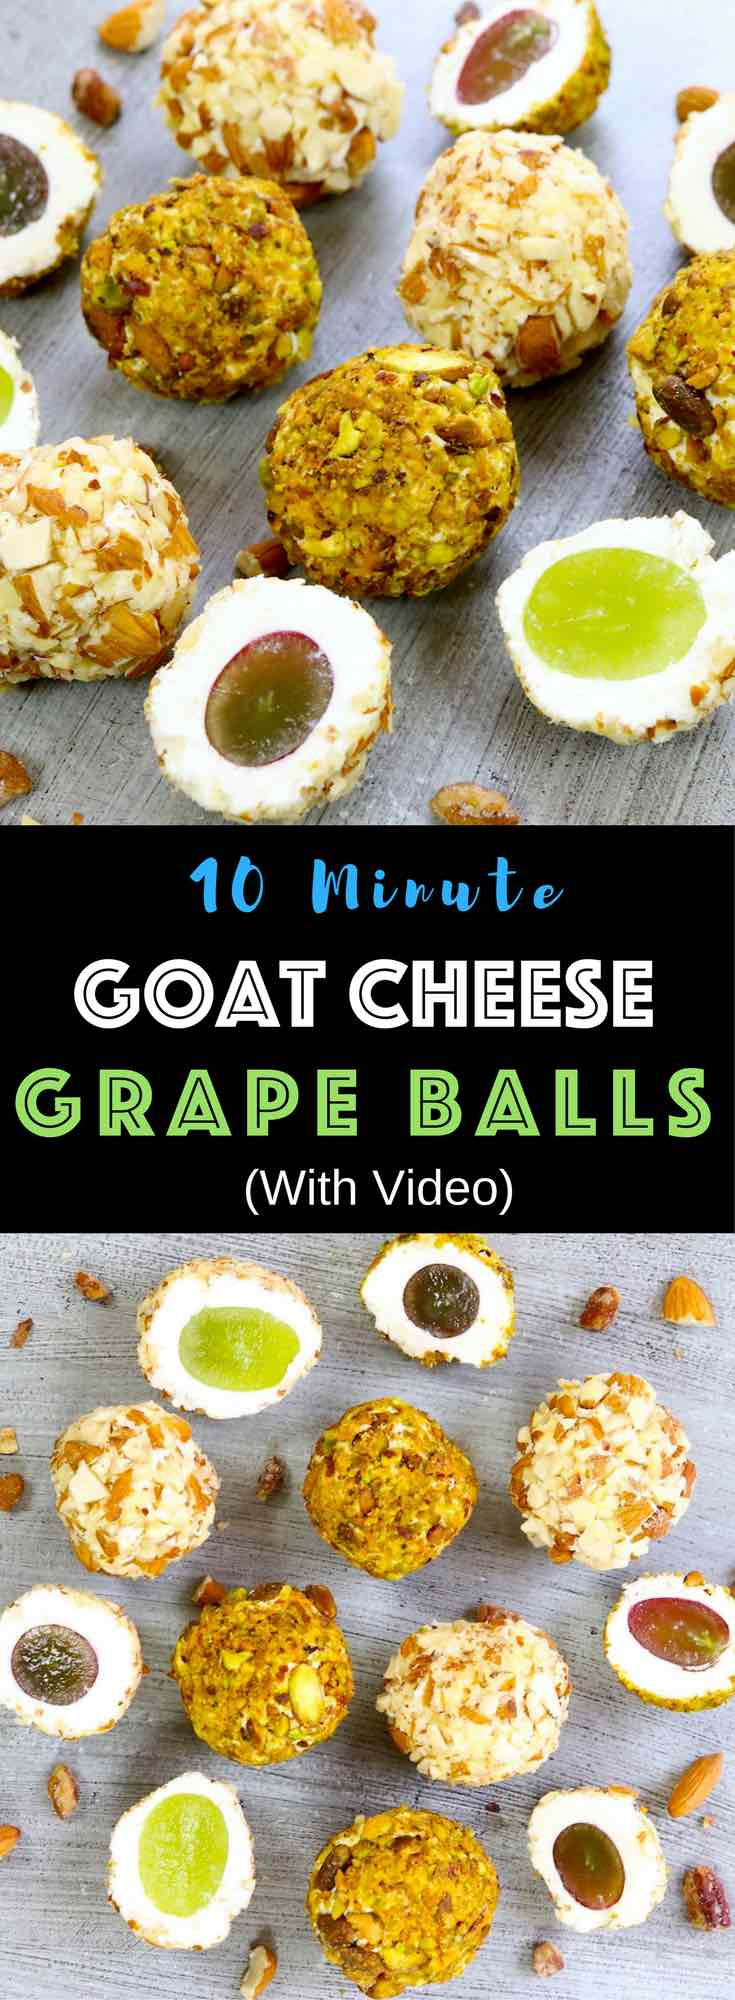 Super easy Goat Cheese Grape Balls – elegant appetizer that takes 10 minutes to prepare. Watch our video tutorial to see how to make them. Alt: Super easy Goat Cheese Grape Balls – elegant appetizer that takes 10 minutes to prepare. All you need is only a few simple ingredients: grapes, cream cheese, goat cheese, pistachios, and almonds. Quick and easy appetizer. Party food. Video recipe. | Tipbuzz.com